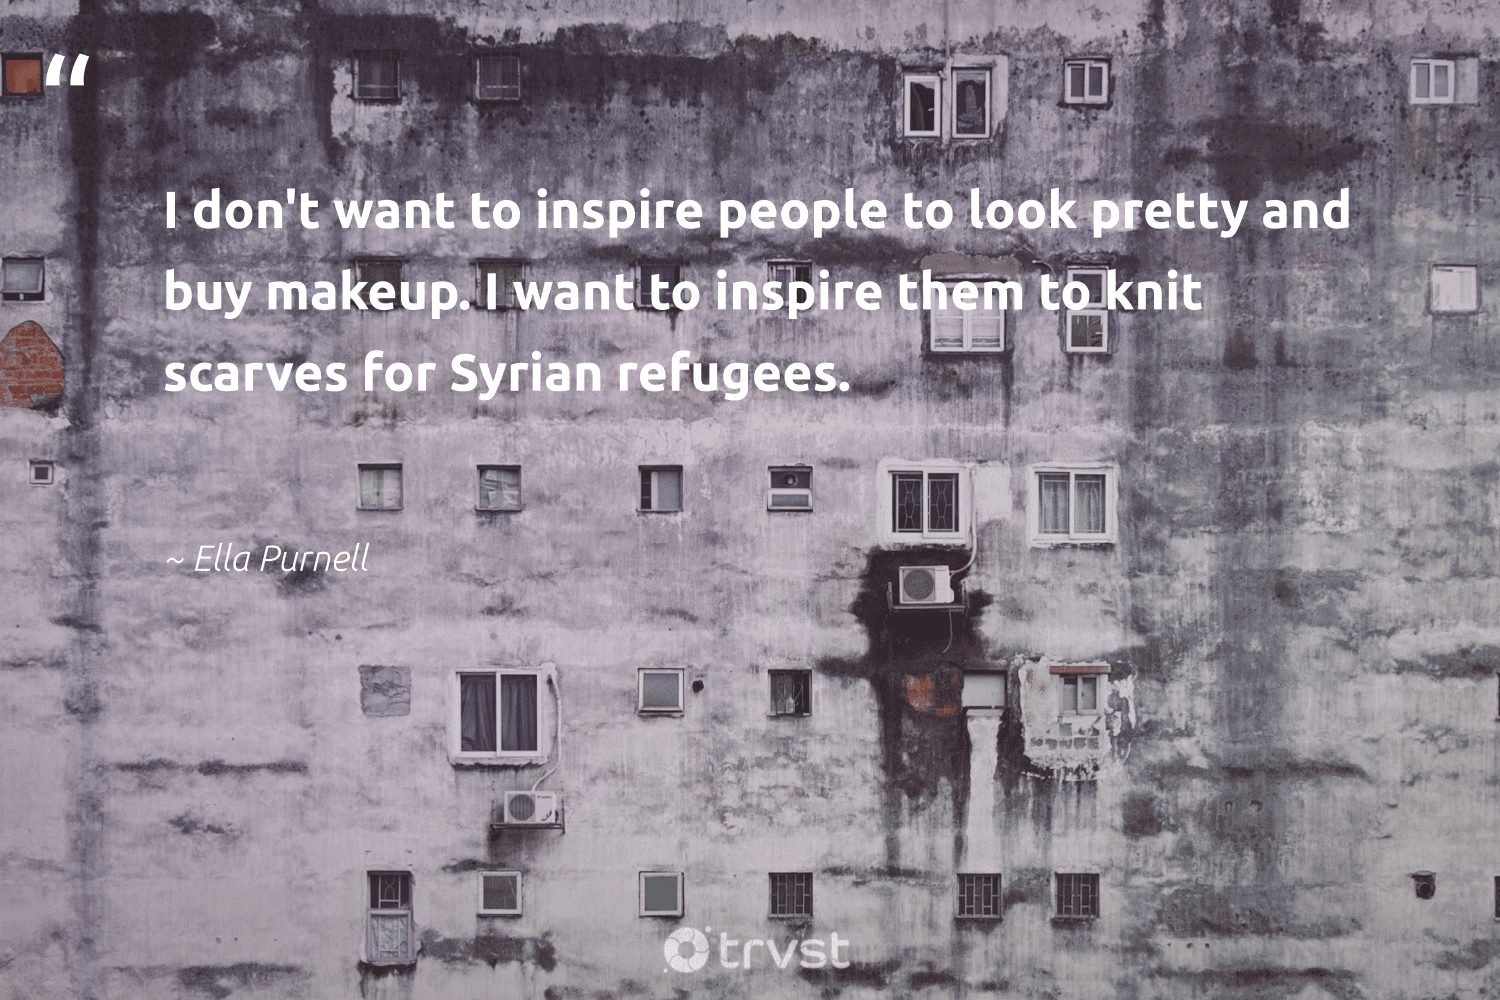 """""""I don't want to inspire people to look pretty and buy makeup. I want to inspire them to knit scarves for Syrian refugees.""""  - Ella Purnell #trvst #quotes #refugees #syria #sustainablefutures #equalopportunity #changetheworld #refugeeswelcome #equalrights #makeadifference #dogood #refugee"""